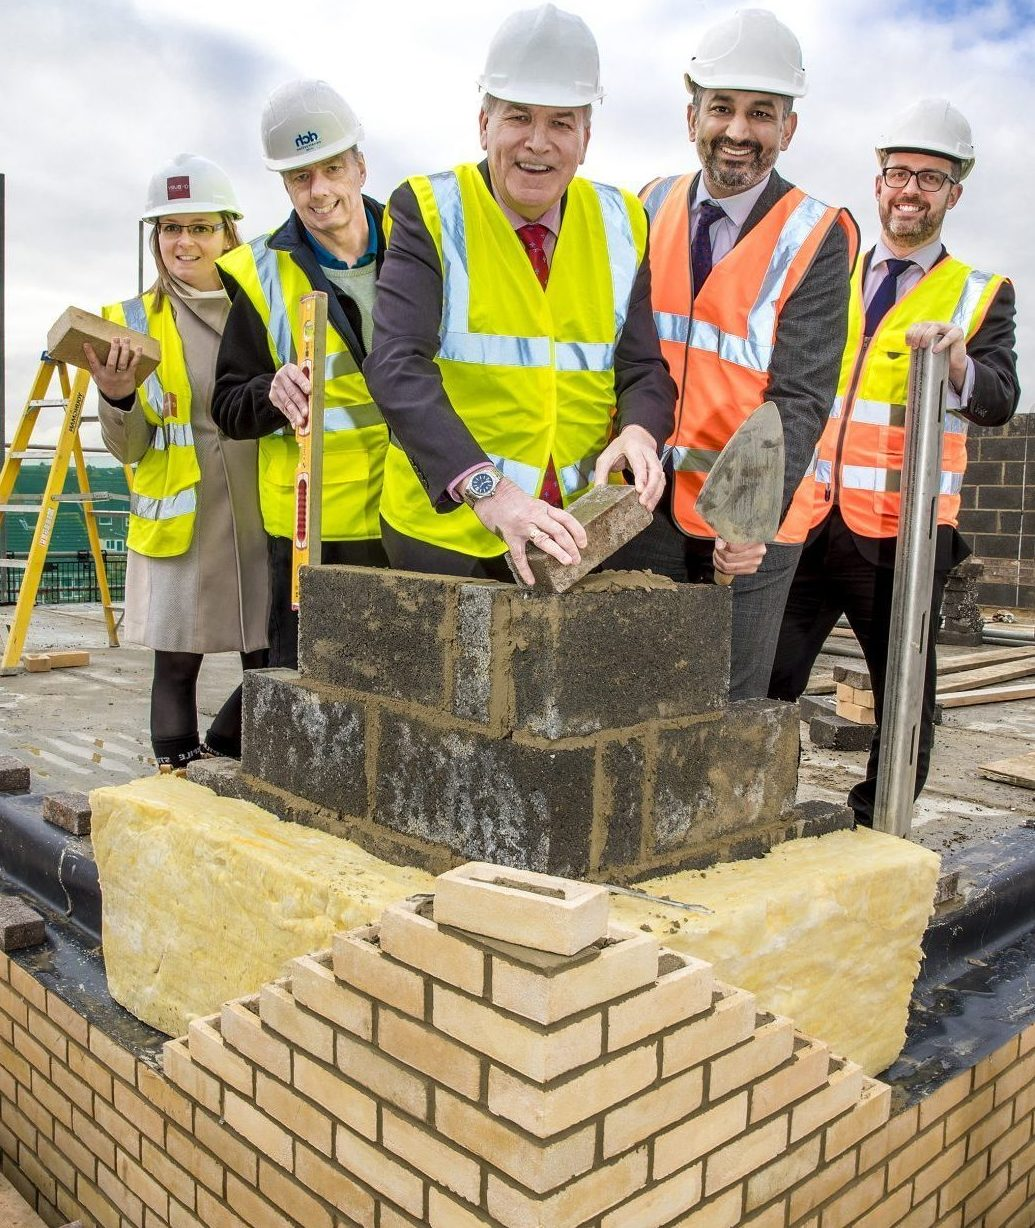 Topping out ceremony celebrates new development of 26 homes in Chelmsford moving one step closer to completion